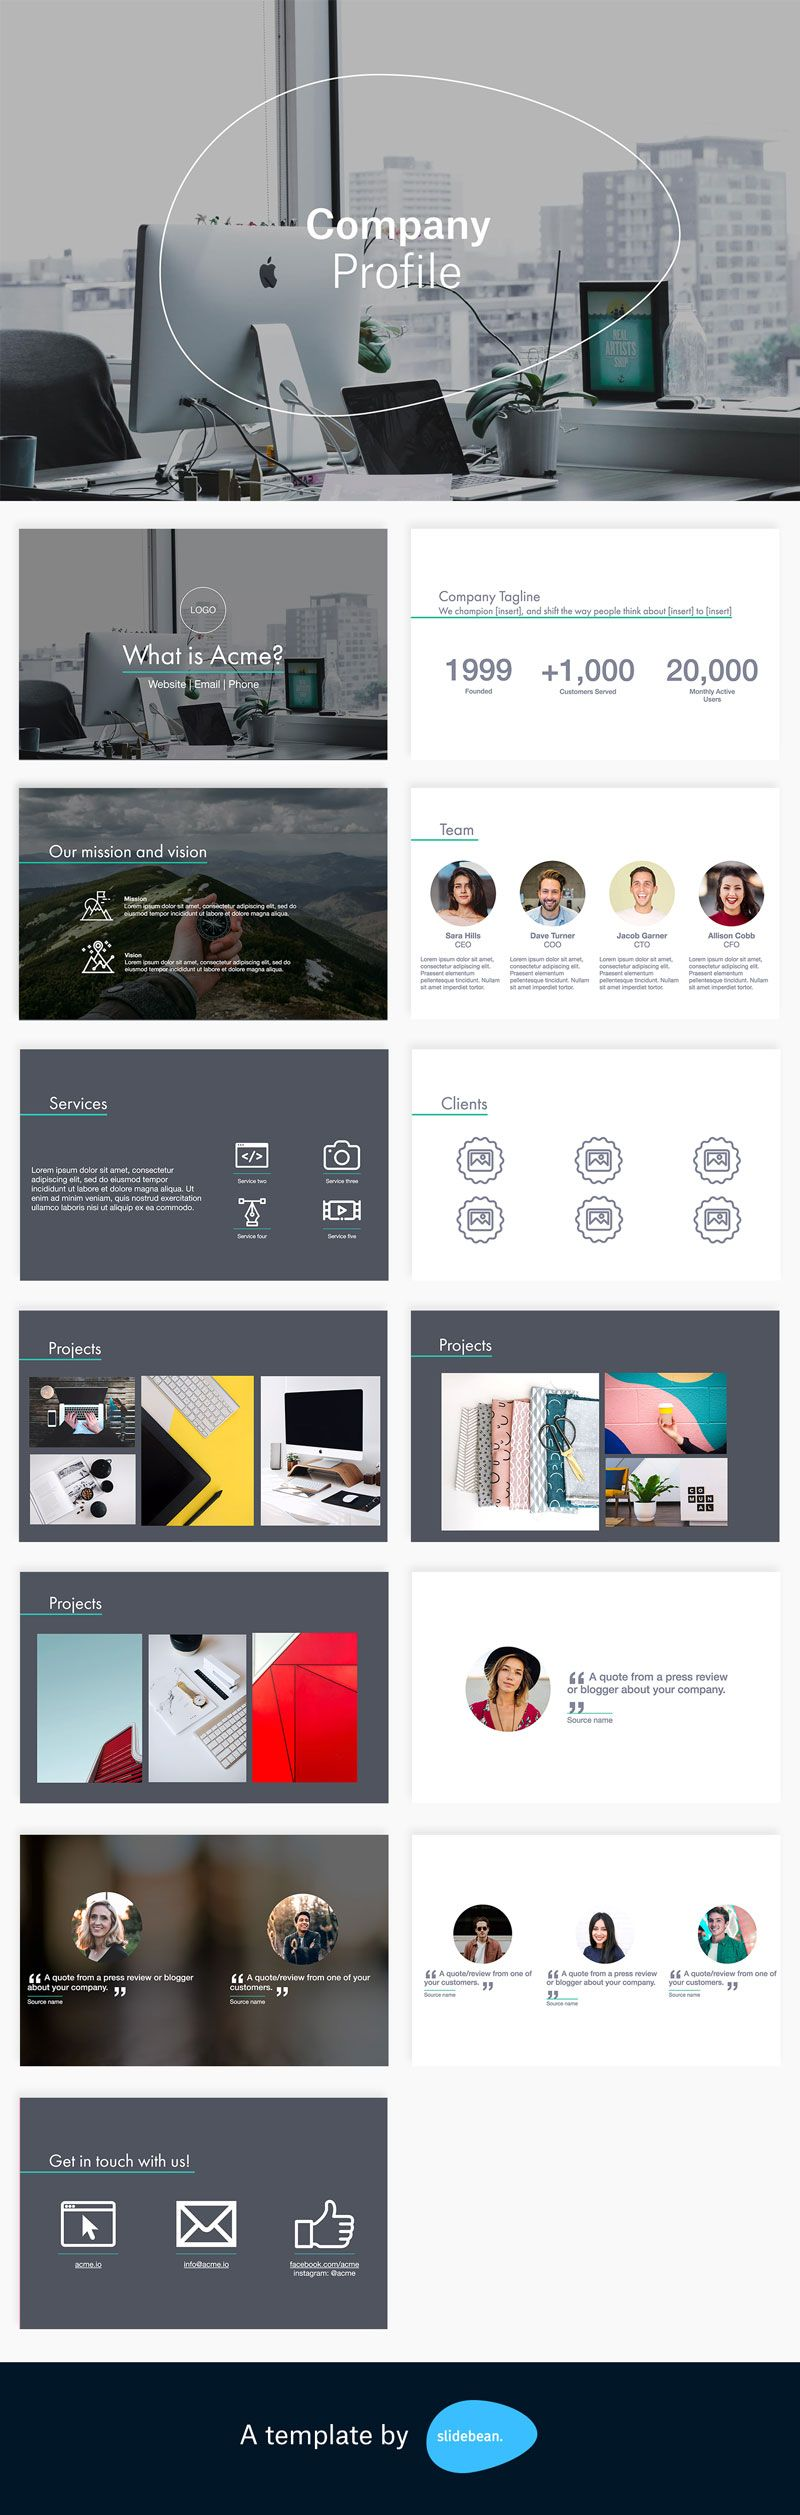 Company Profile Template Free Pdf Ppt Download Slidebean Company Profile Template Company Profile Brochure Design Layouts